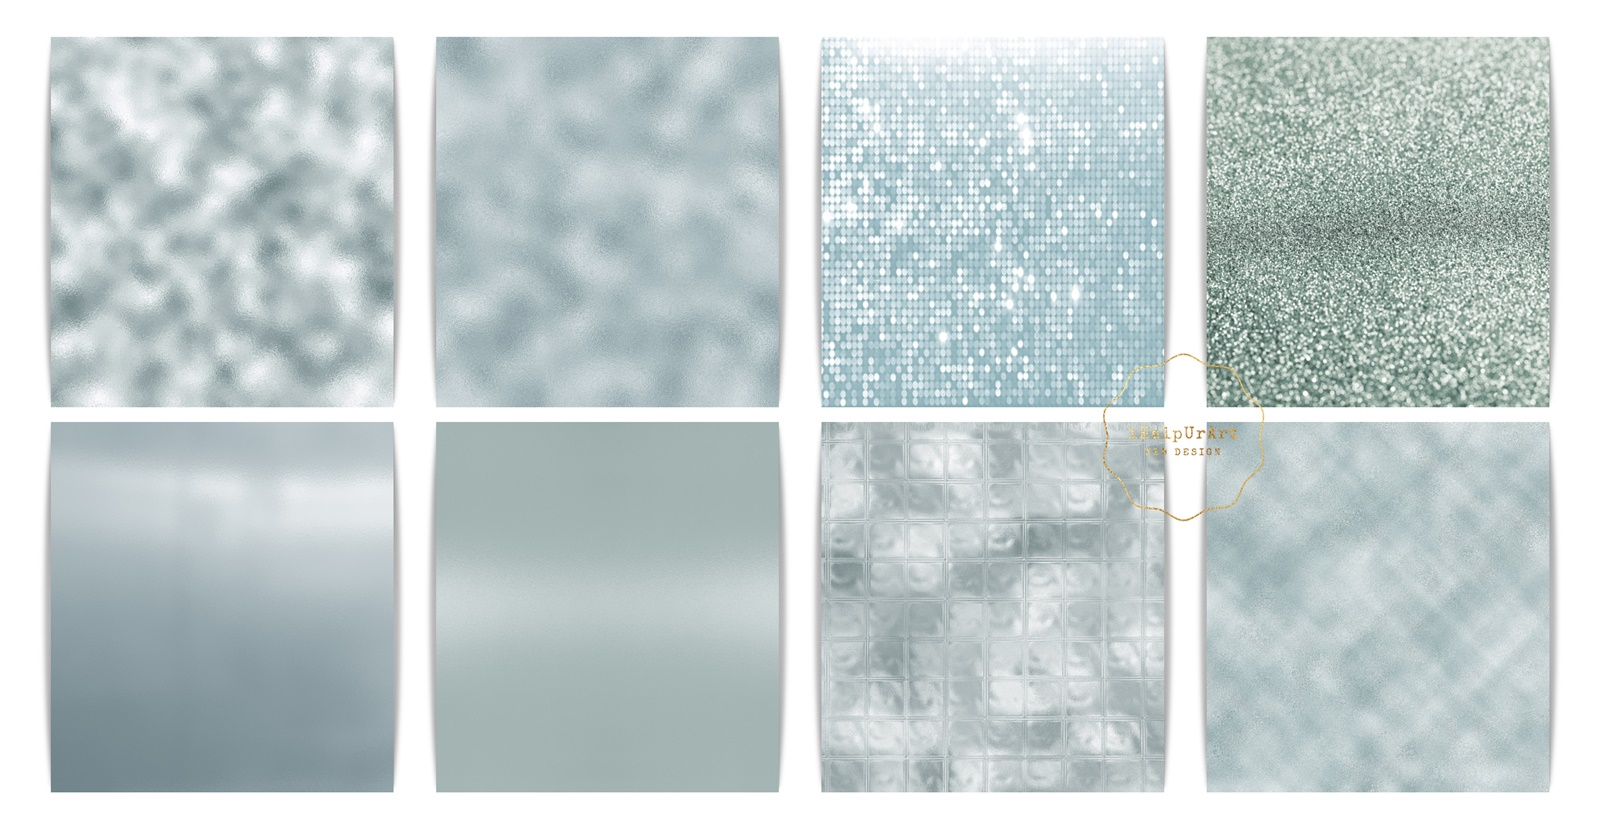 Minty Metallic Texture Papers example image 4